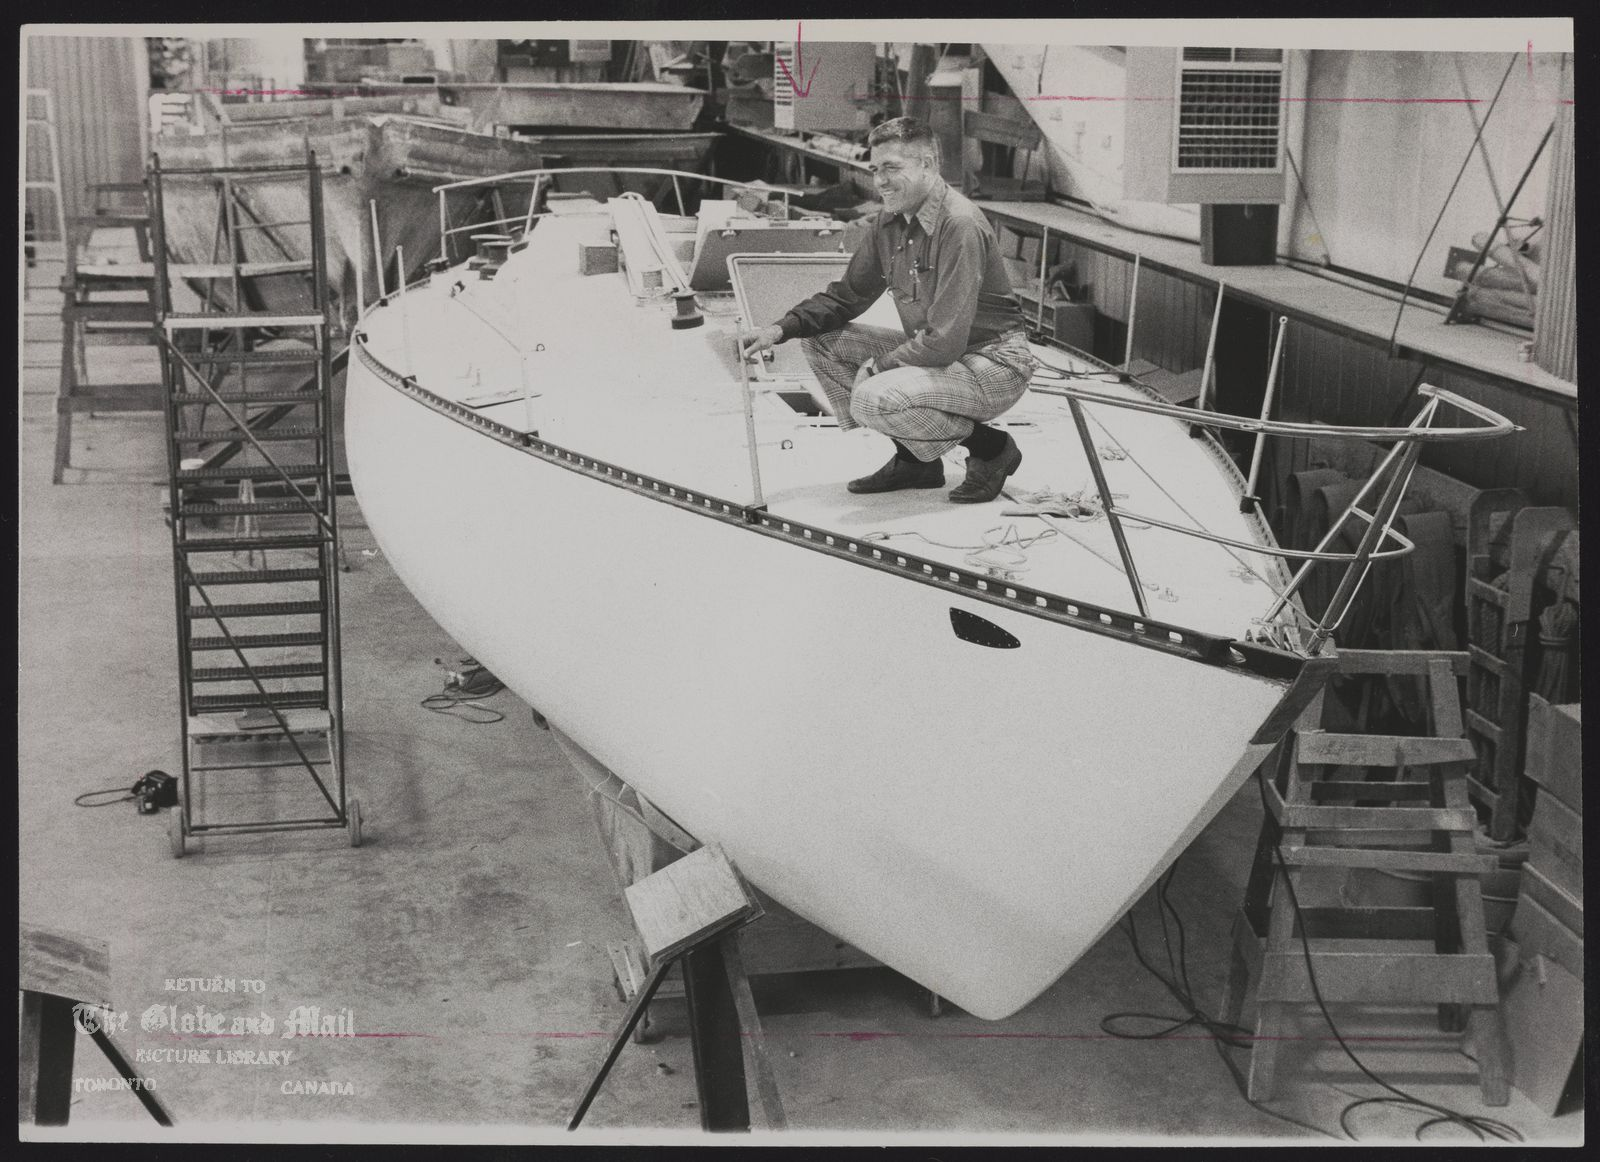 C AND C YACHTS LIMITED George Cuthbertson, president of C and C Yachts Ltd., inspects hull of new craft at Oakville plant.